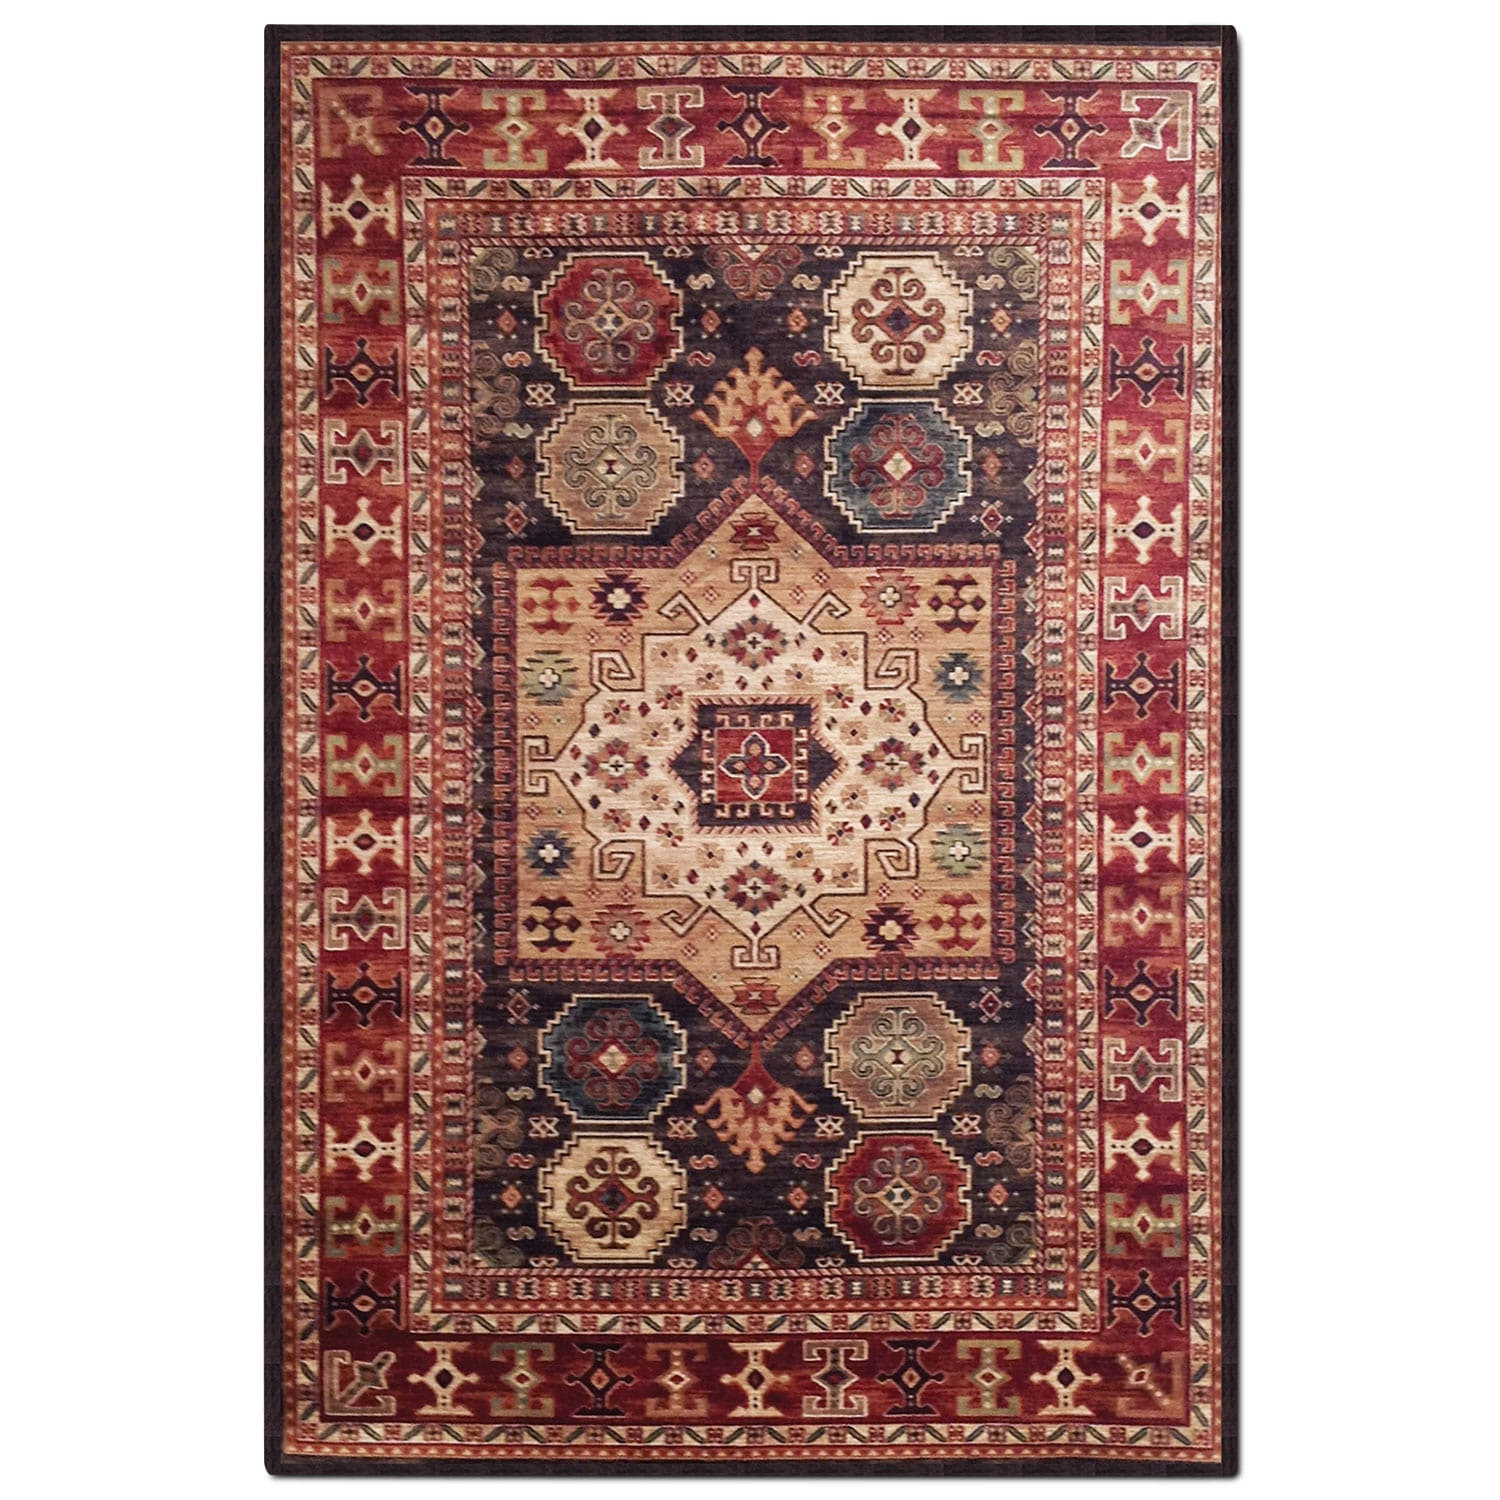 Rugs - Sonoma 5' x 8' Area Rug - Chocolate and Red